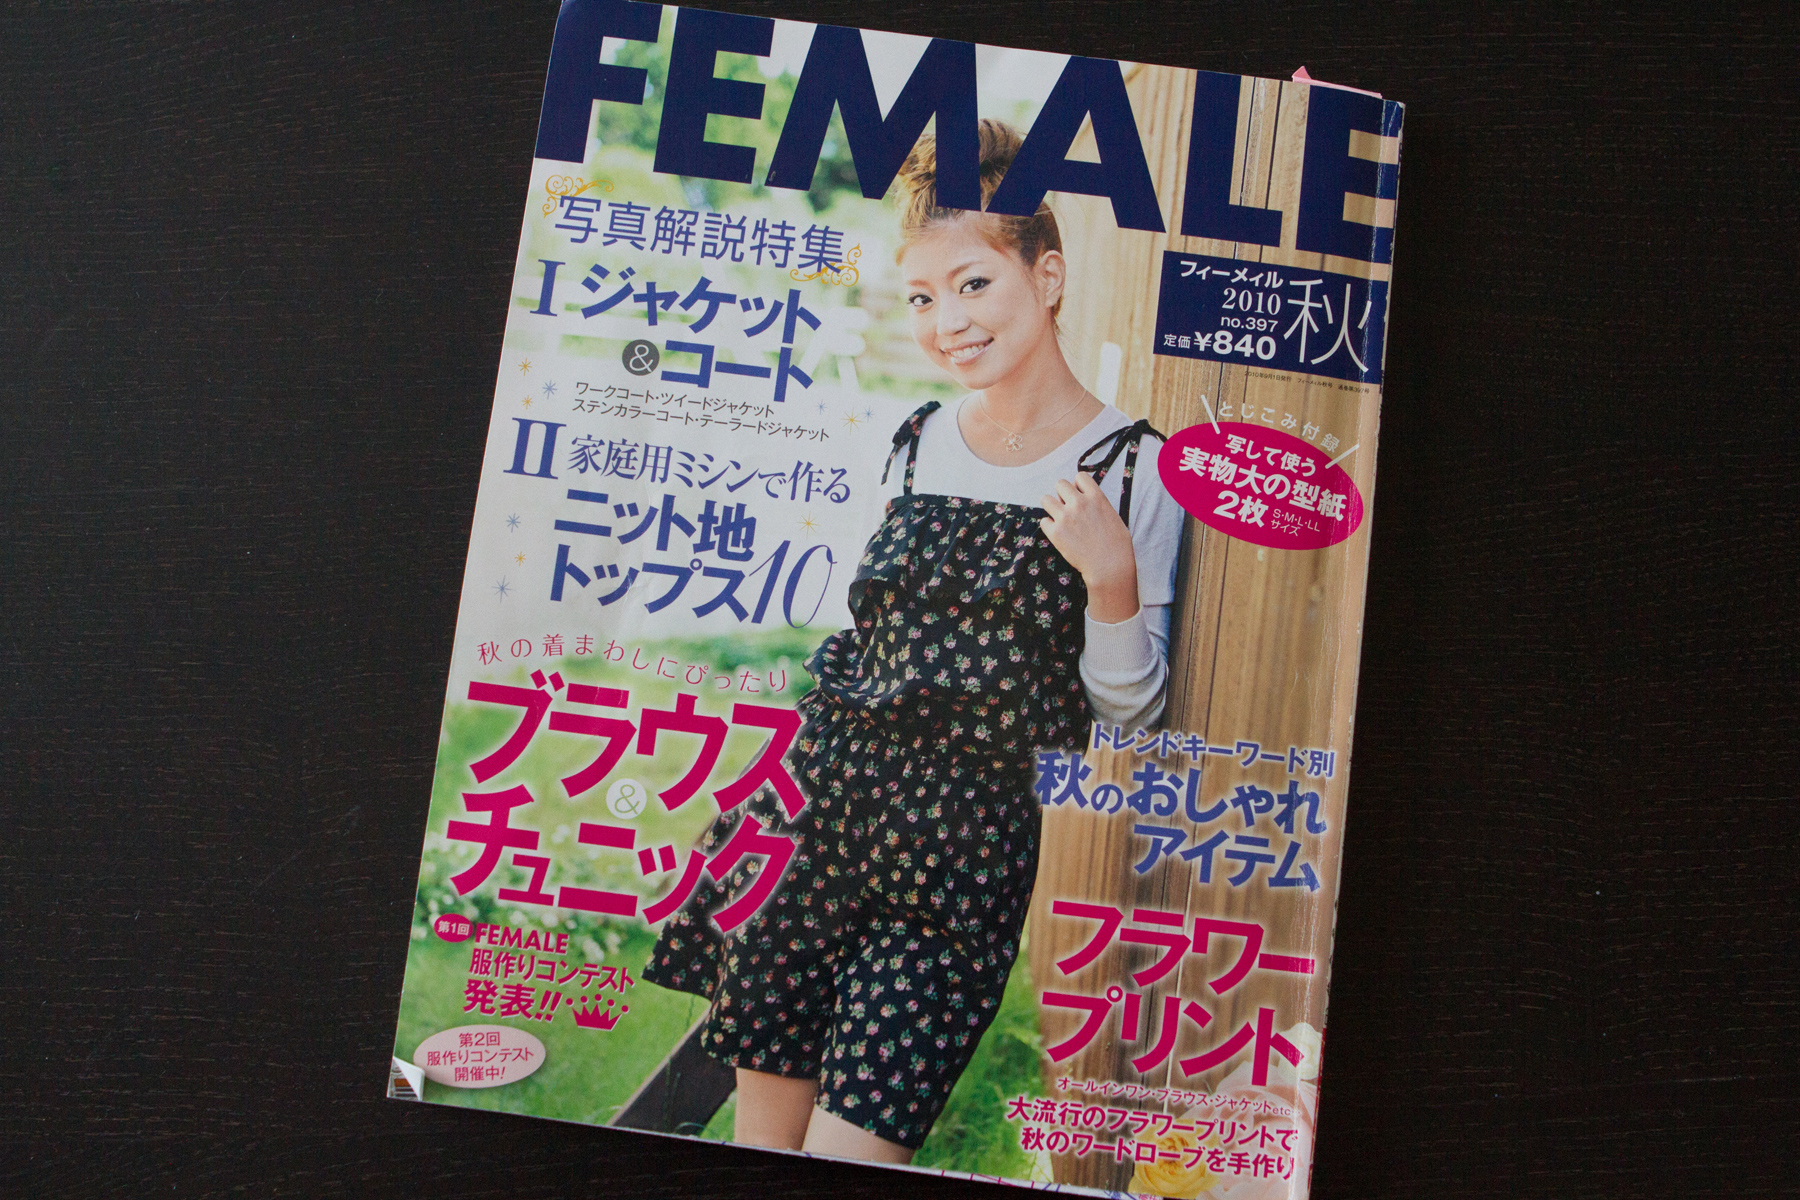 The pattern I used is from this sewing magazine. Female 2010 Fall issue.